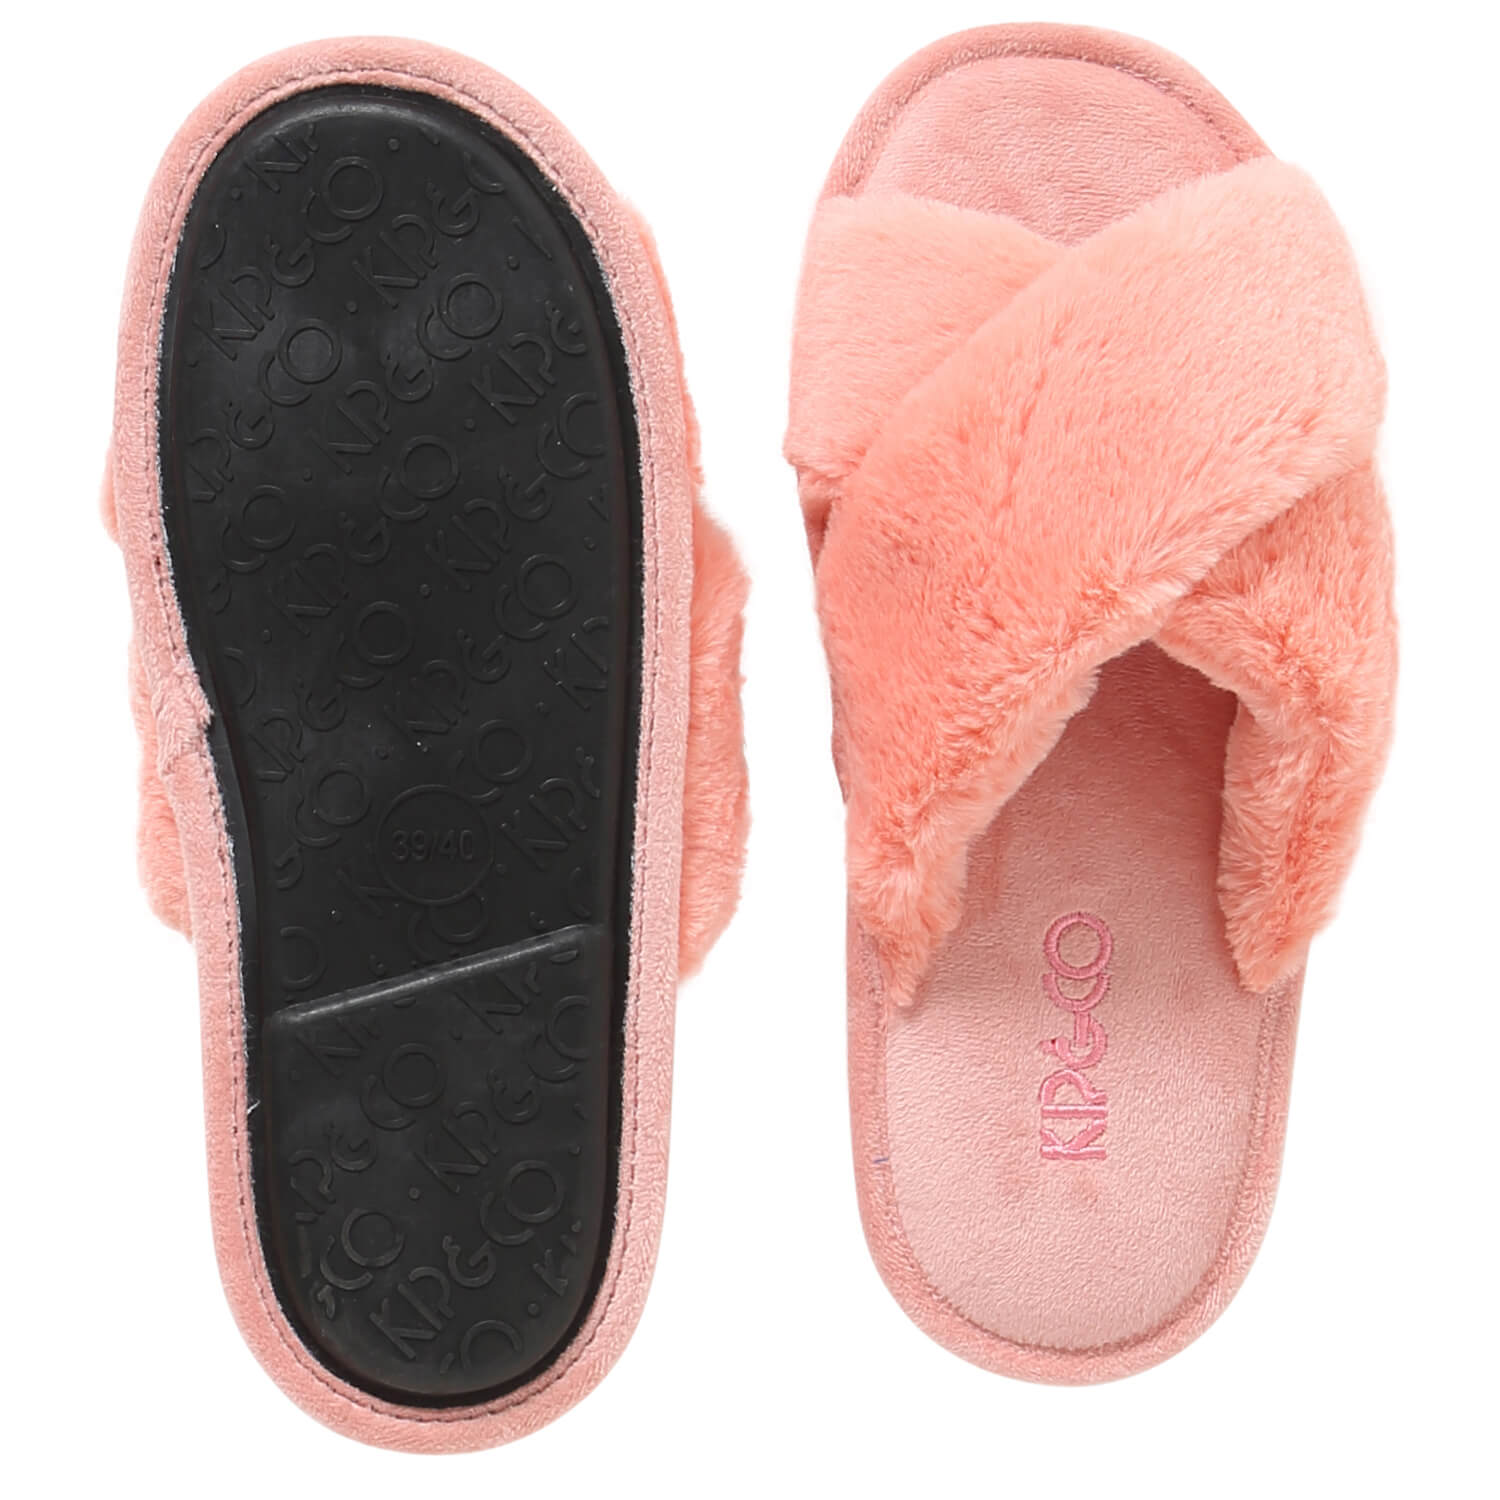 Kip and Co blush pink slippers | The Home Maven